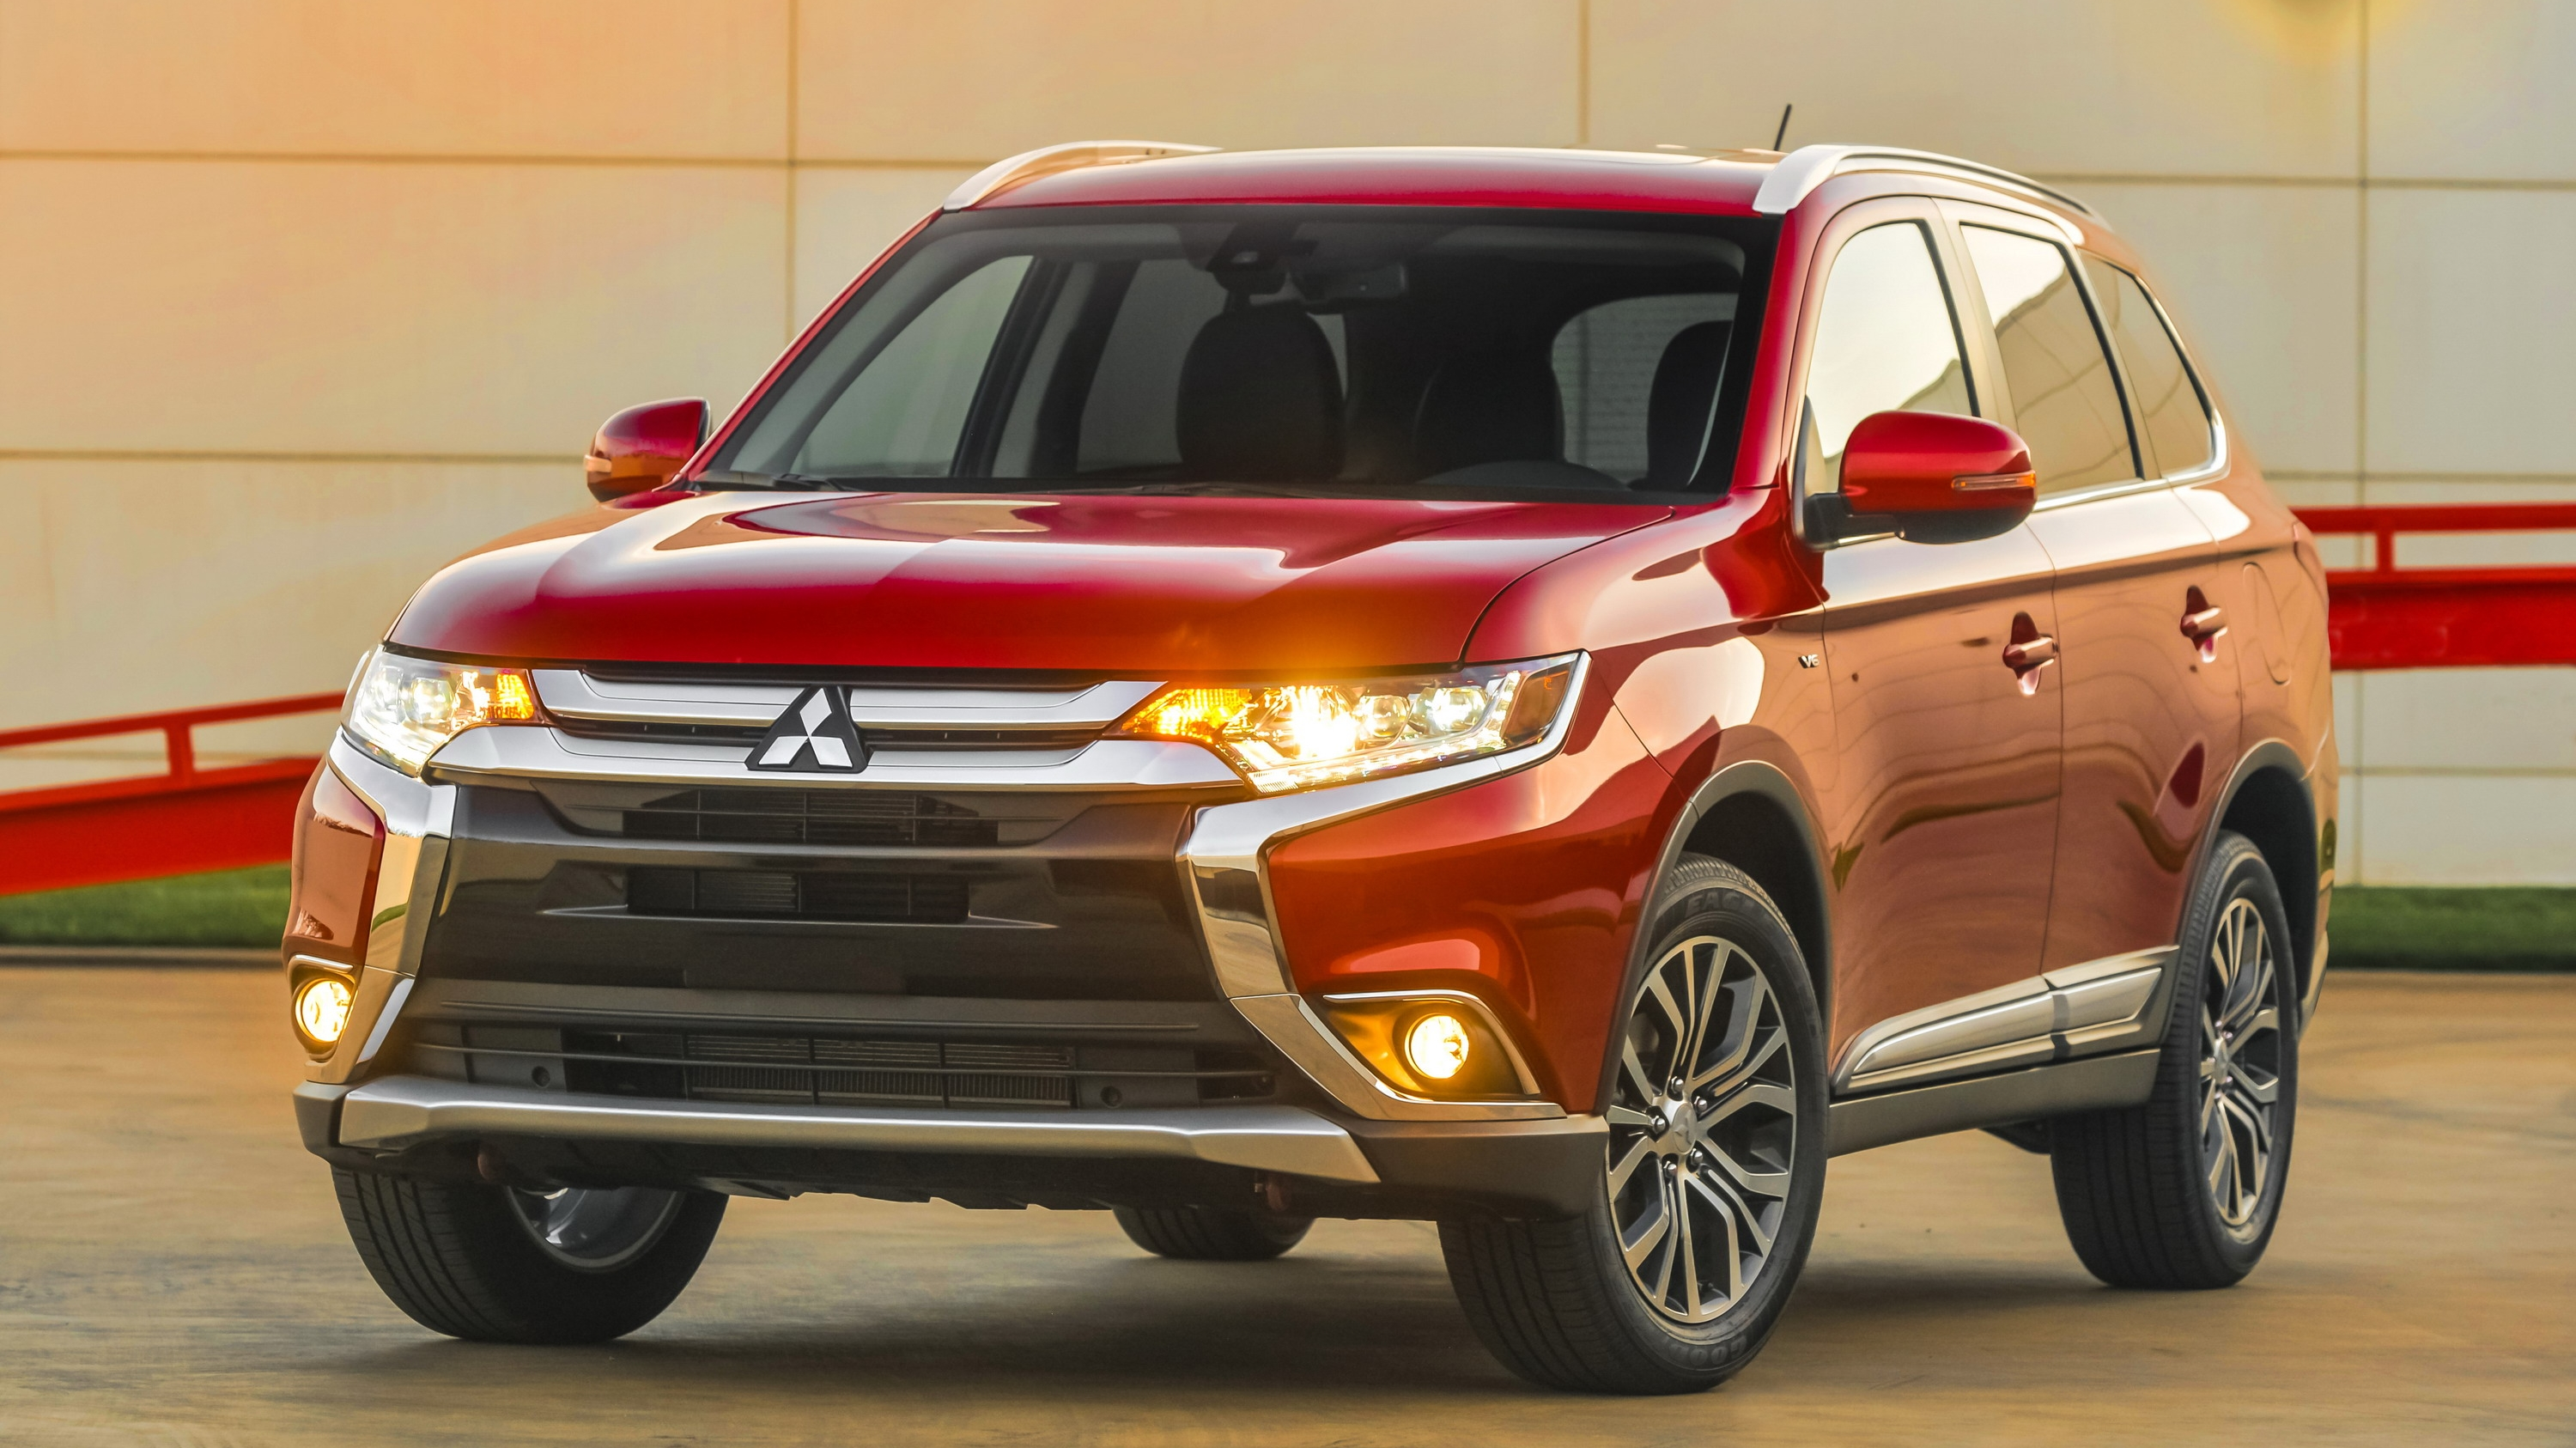 2016 Mitsubishi Outlander | Top Speed. »